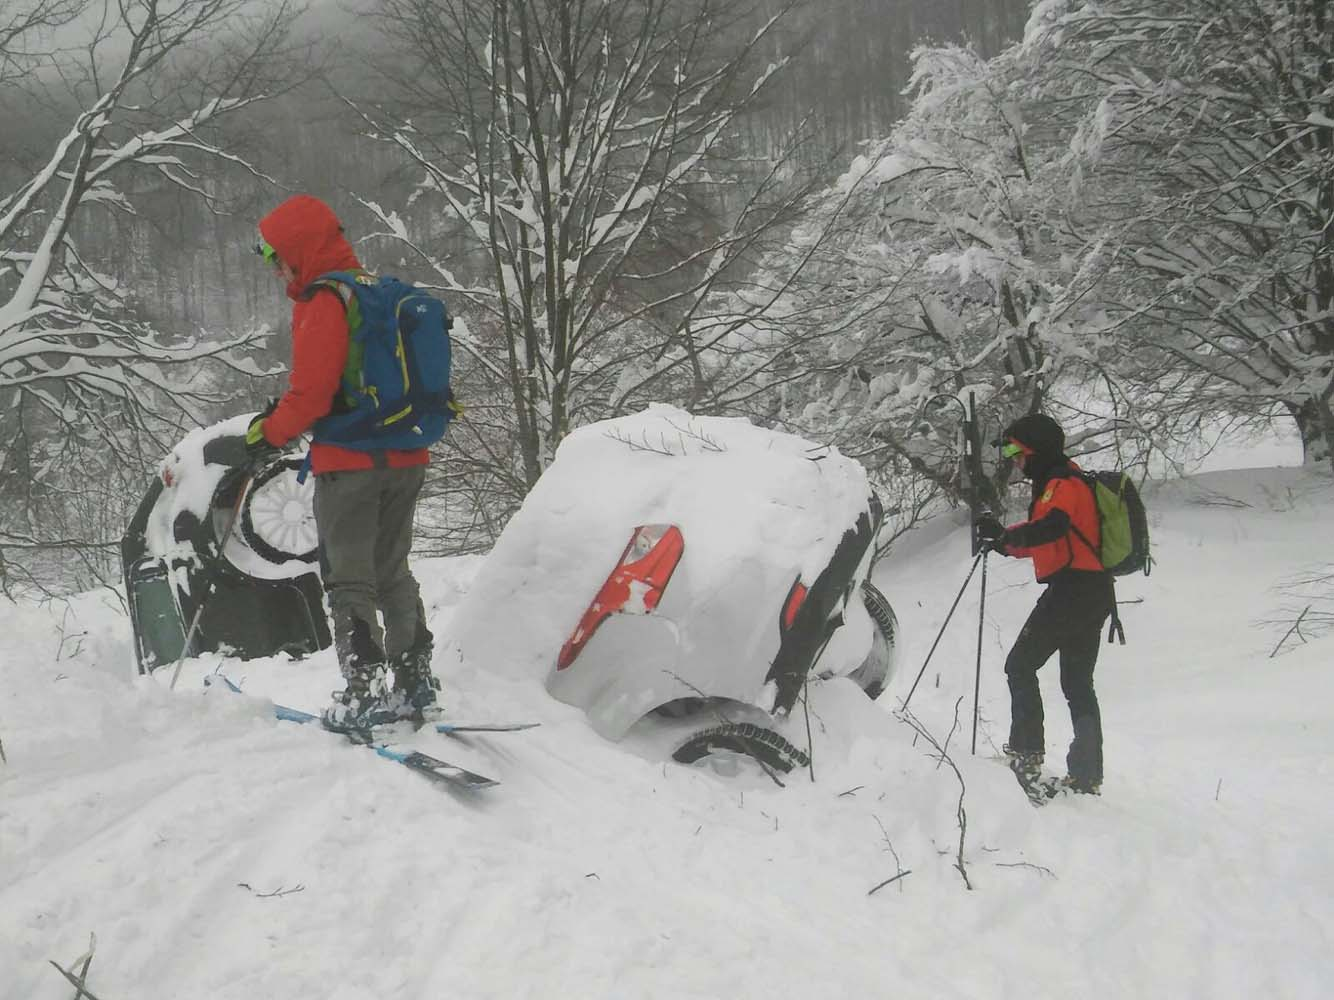 Members of Lazio's Alpine and Speleological Rescue Team are seen next to cars covered in snow in front of the Hotel Rigopiano in Farindola, central Italy, hit by an avalanche, in this January 19, 2017 handout picture provided by Lazio's Alpine and Speleological Rescue Team. Soccorso Alpino Speleologico Lazio/Handout via REUTERS ATTENTION EDITORS - THIS IMAGE WAS PROVIDED BY A THIRD PARTY. EDITORIAL USE ONLY. NO RESALES. NO ARCHIVE.